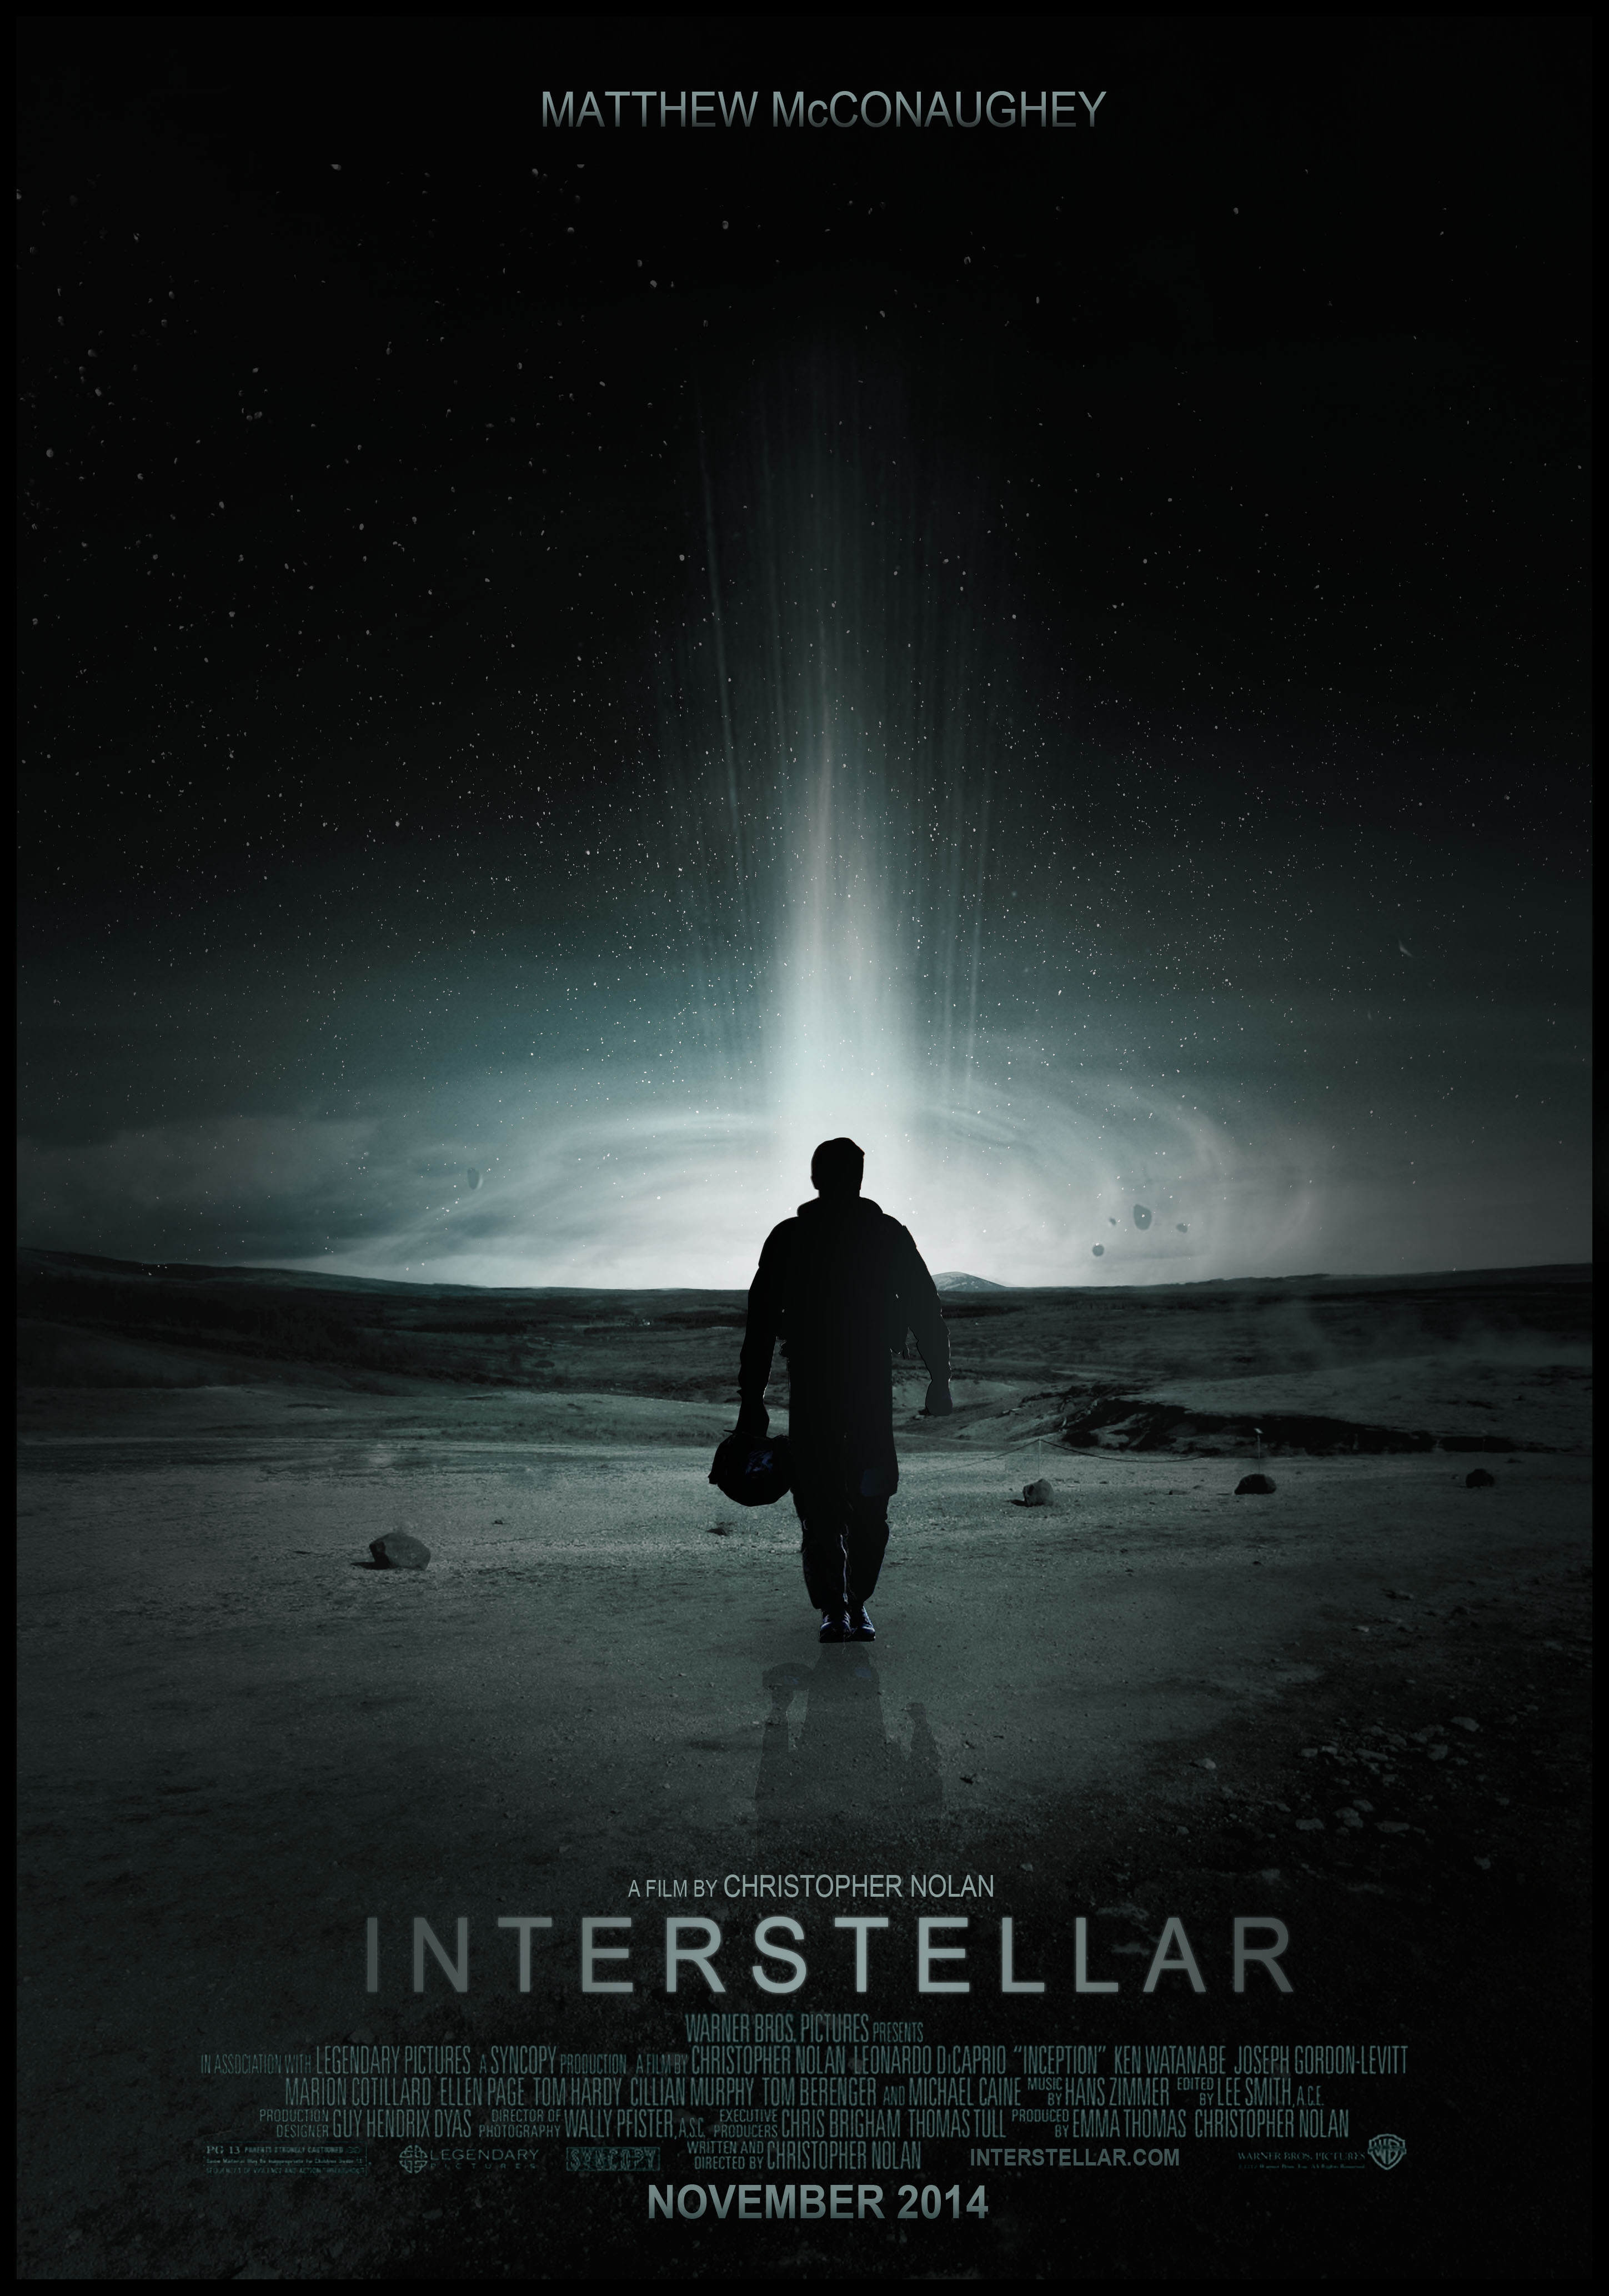 Interstellar Poster Interstellar-teaserposter